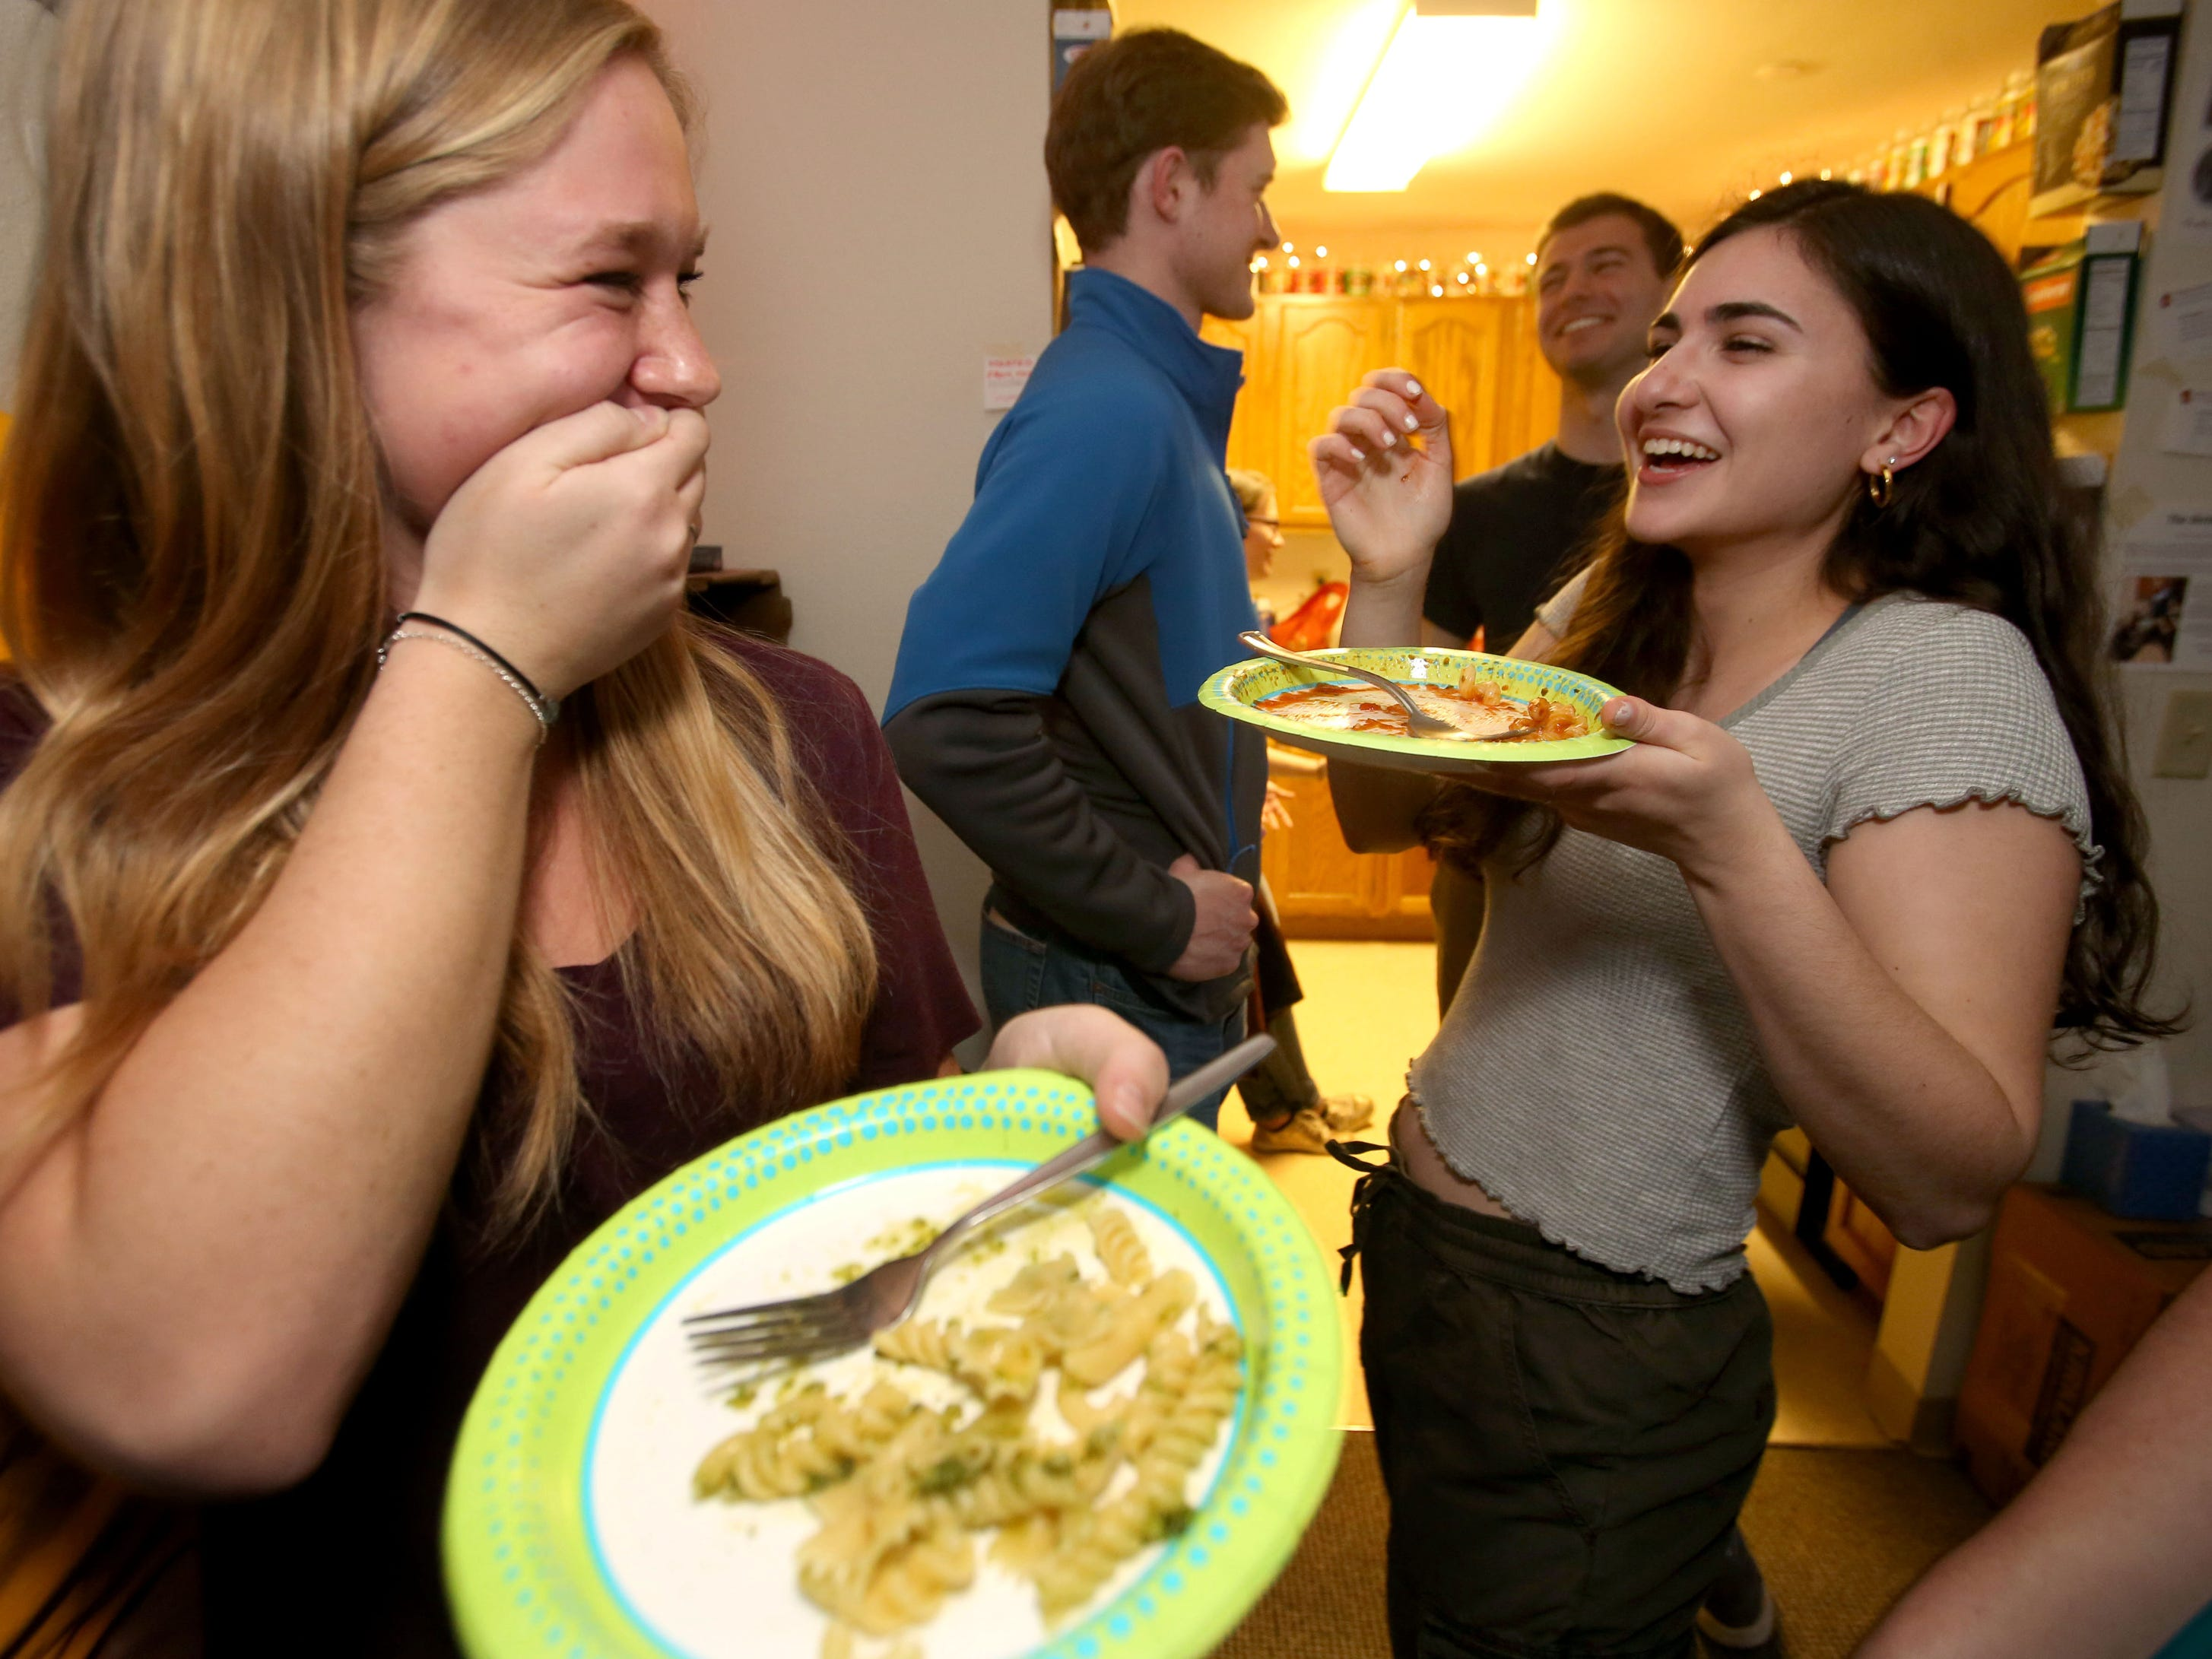 Marquette students Carley Korte, left, a junior in mechanical engineering, and Lia Grandinetti, a junior in arts and sciences, share a laugh while dining at 526 Pasta.